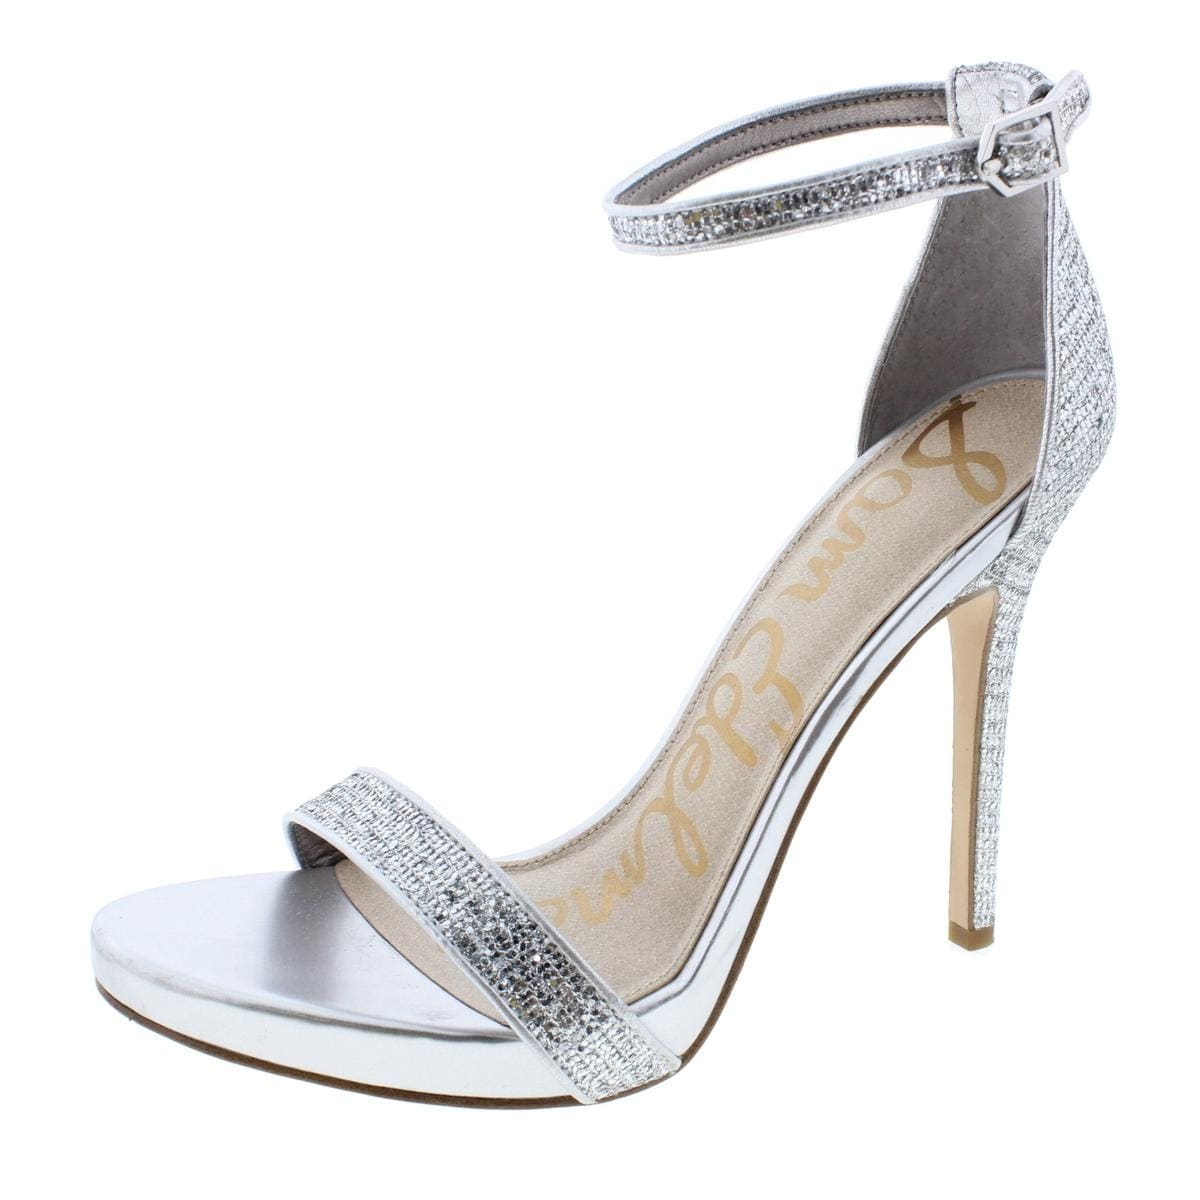 1a299b5144cf Shop Sam Edelman Womens Eleanor Evening Sandals Ankle Strap - Free Shipping  Today - Overstock - 13063875